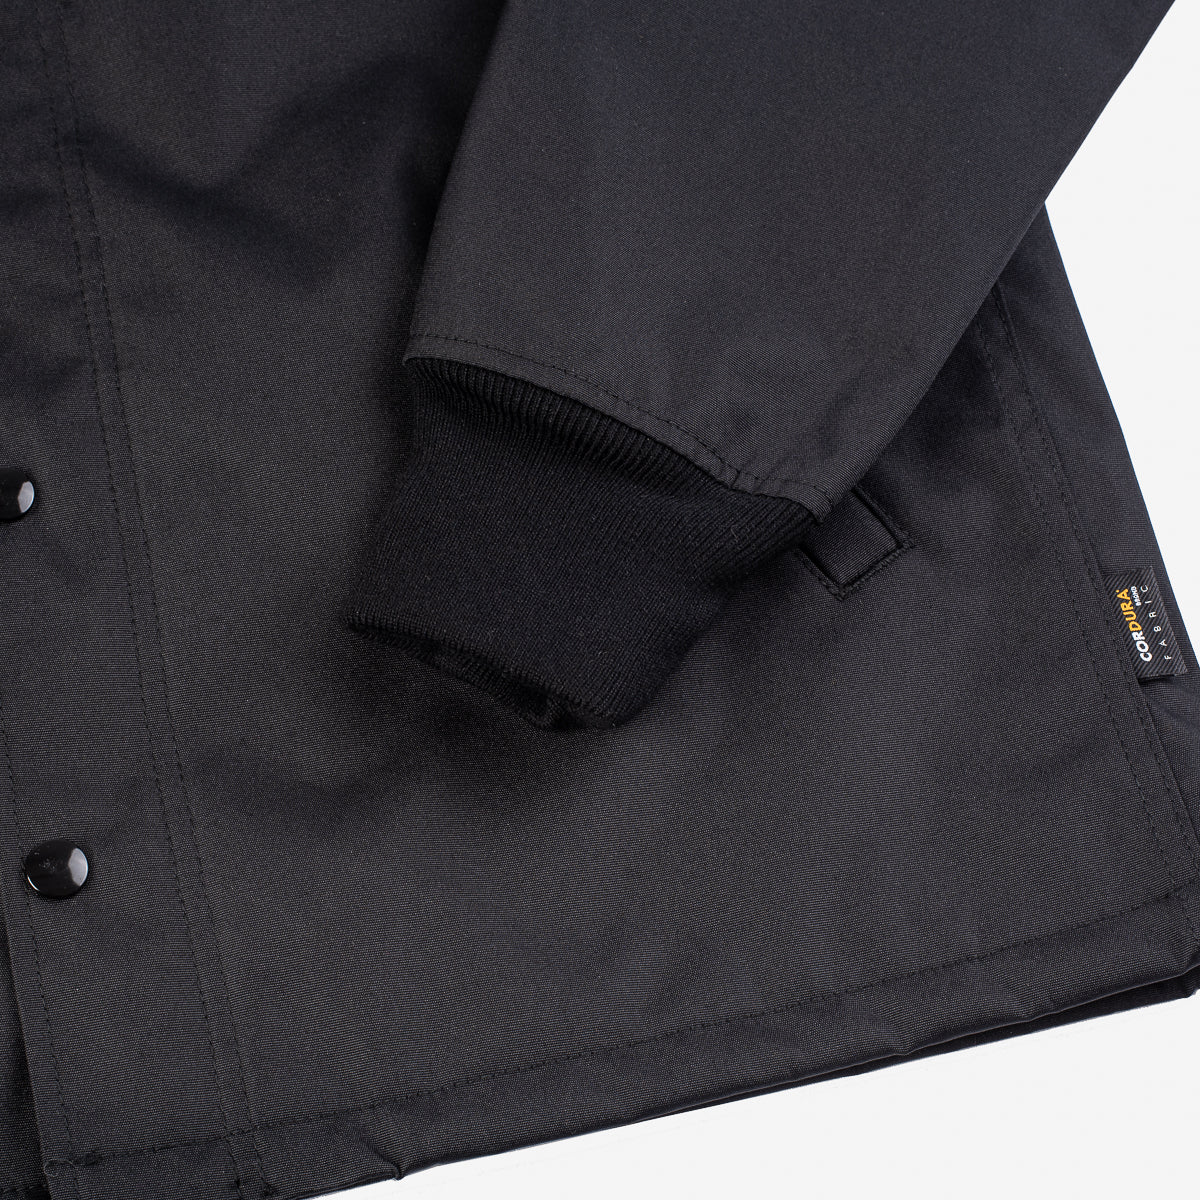 IHJ-12-BLK - Fleece Lined Cordura® Windbreaker Black